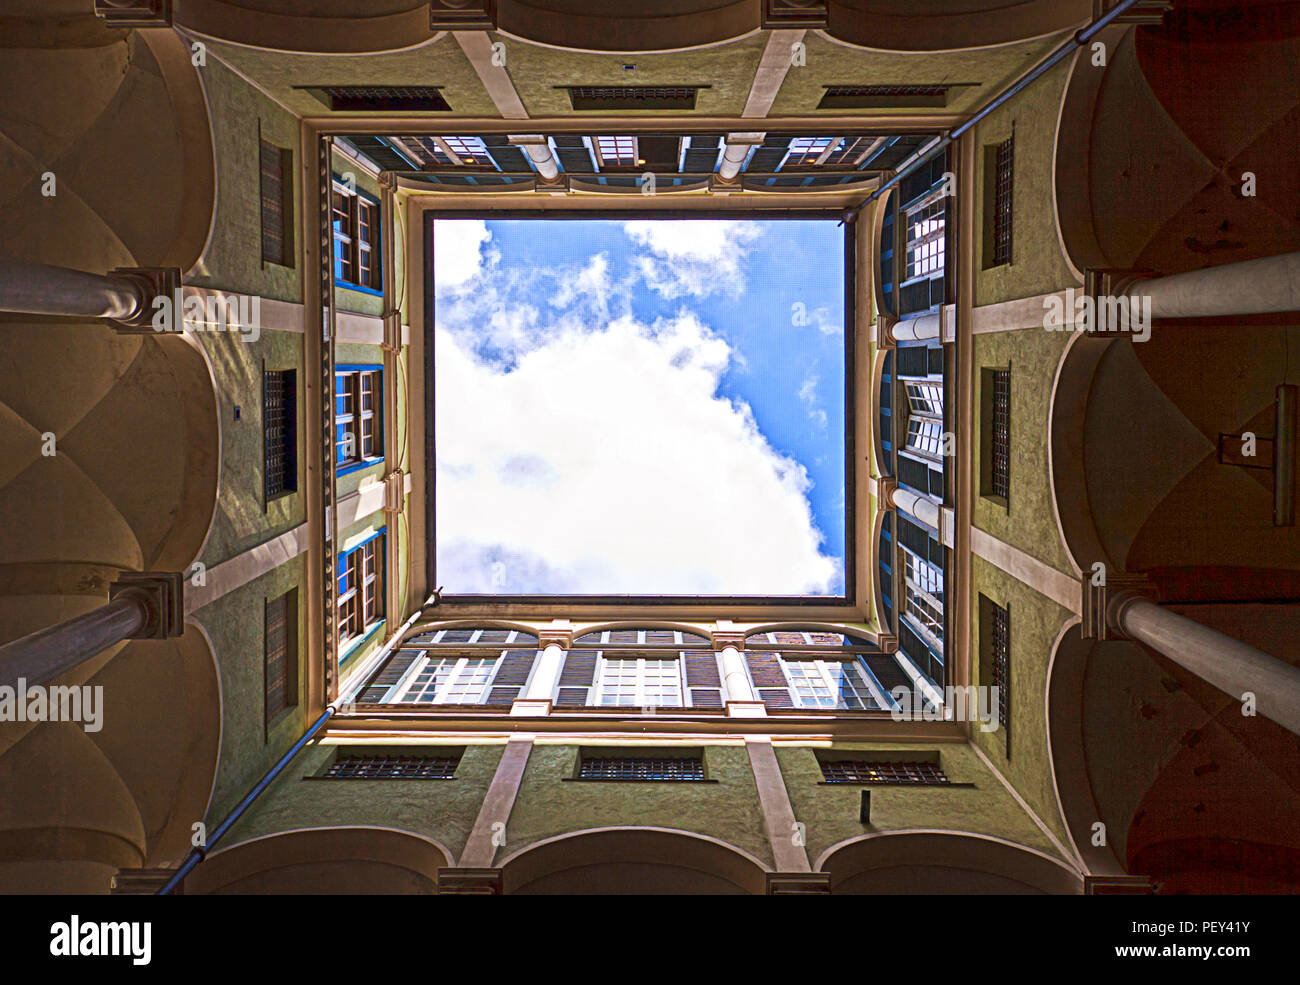 Looking up to the sky from the yard of a building of the University of Genoa, beautiful antique palace of 17th century  surrounded by a porch - Stock Image